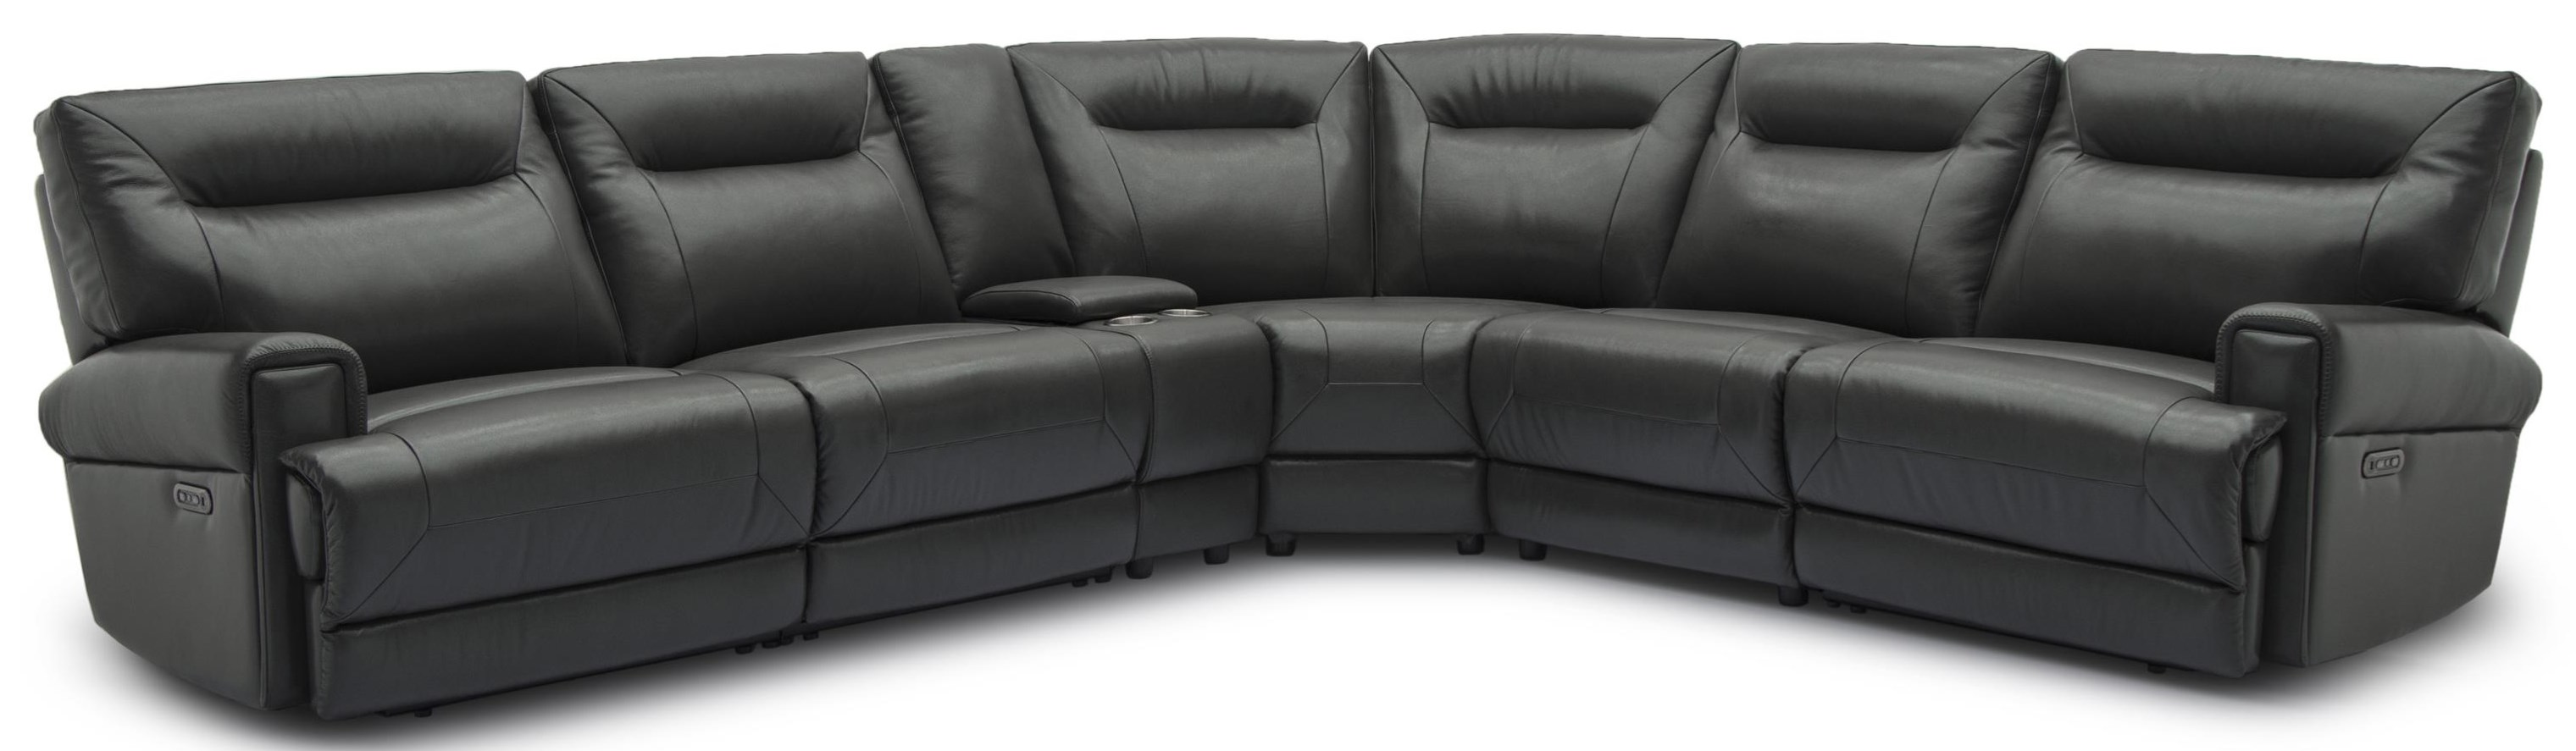 Hialeah Leather Power Reclining Sectional at Rotmans